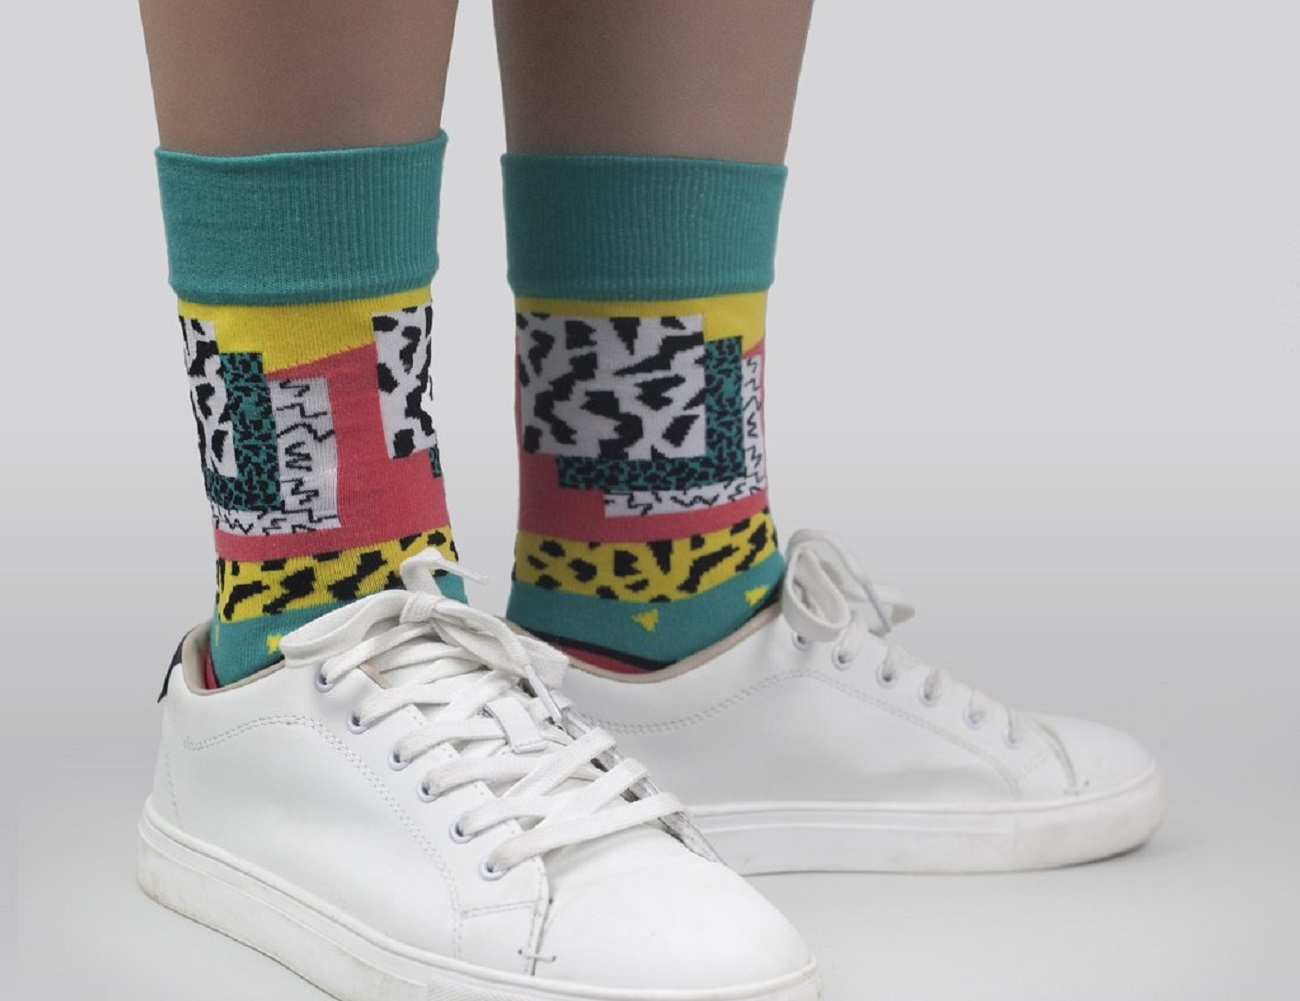 Zulu Zion – The Raddest Socks Of Them All